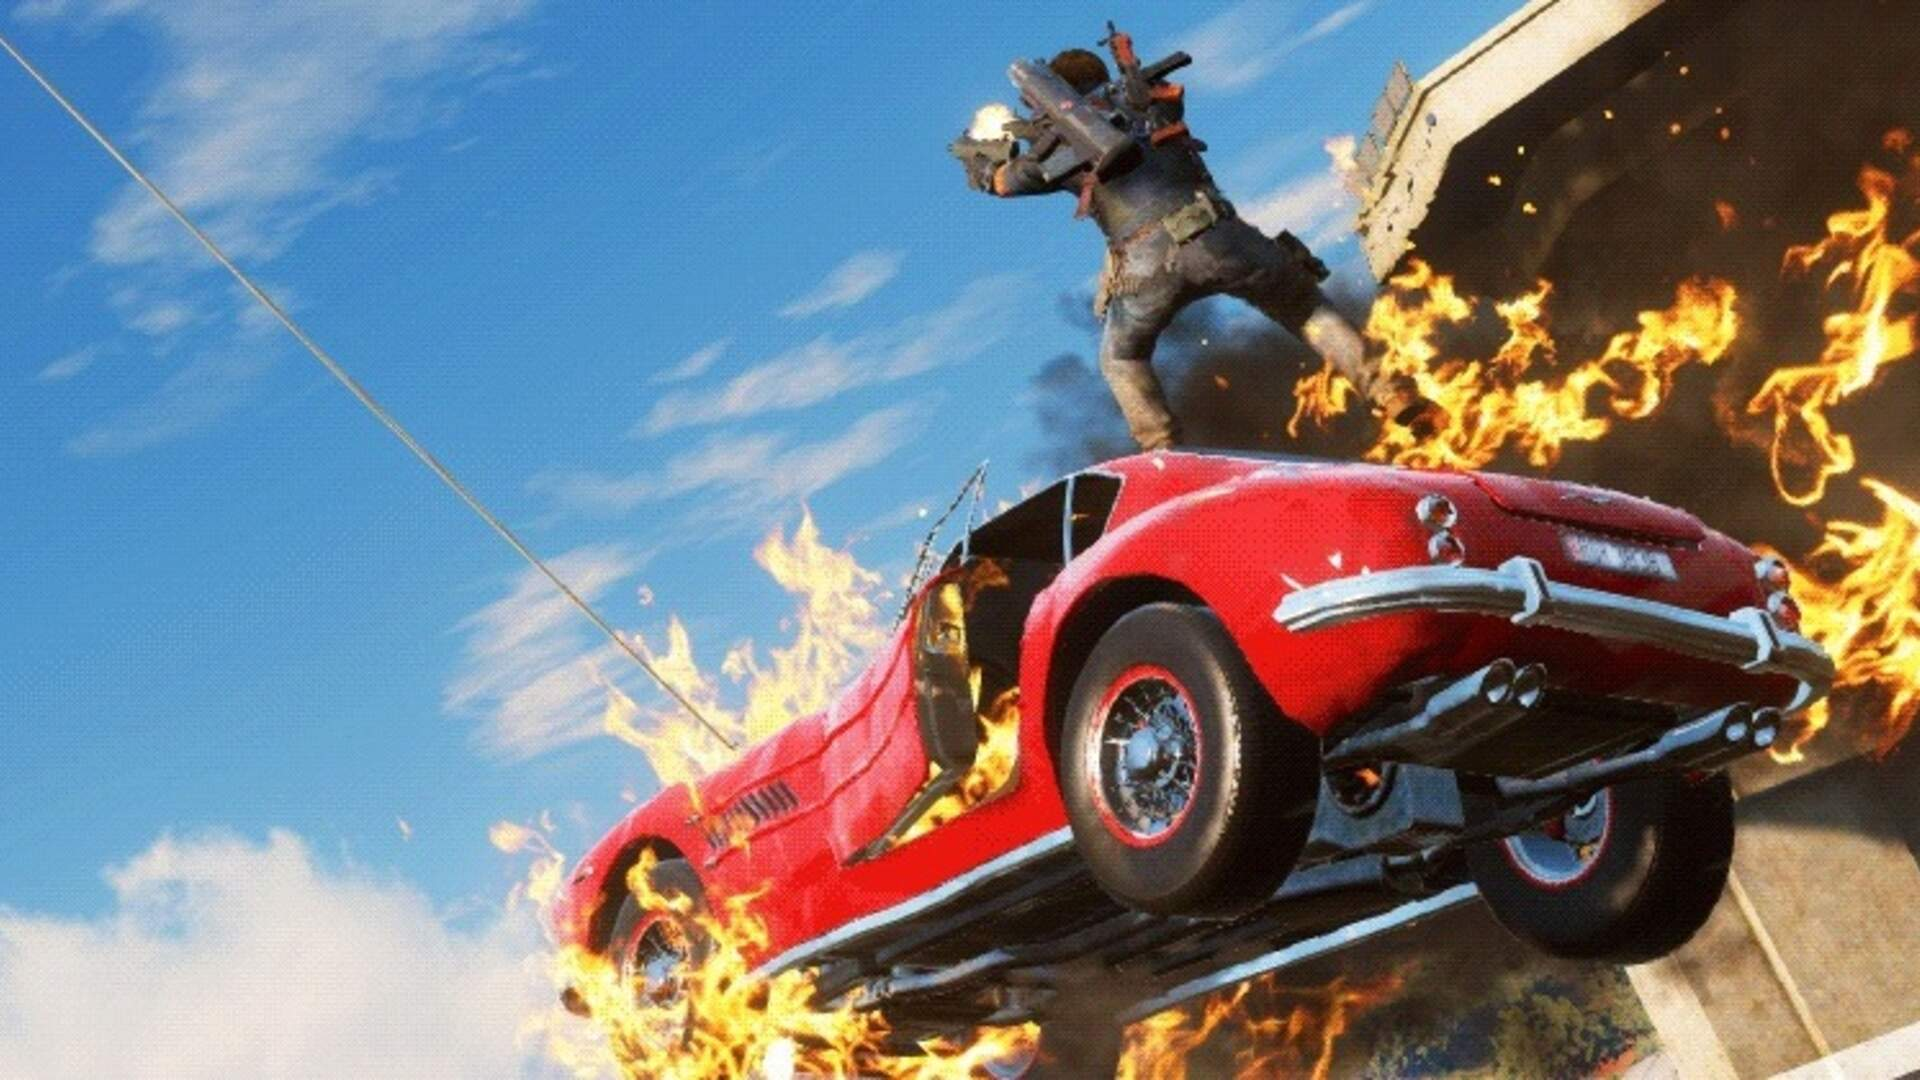 Just Cause 3 Story Mission Guide: Connect the Dots, Destroy Choppers and SAM Sites